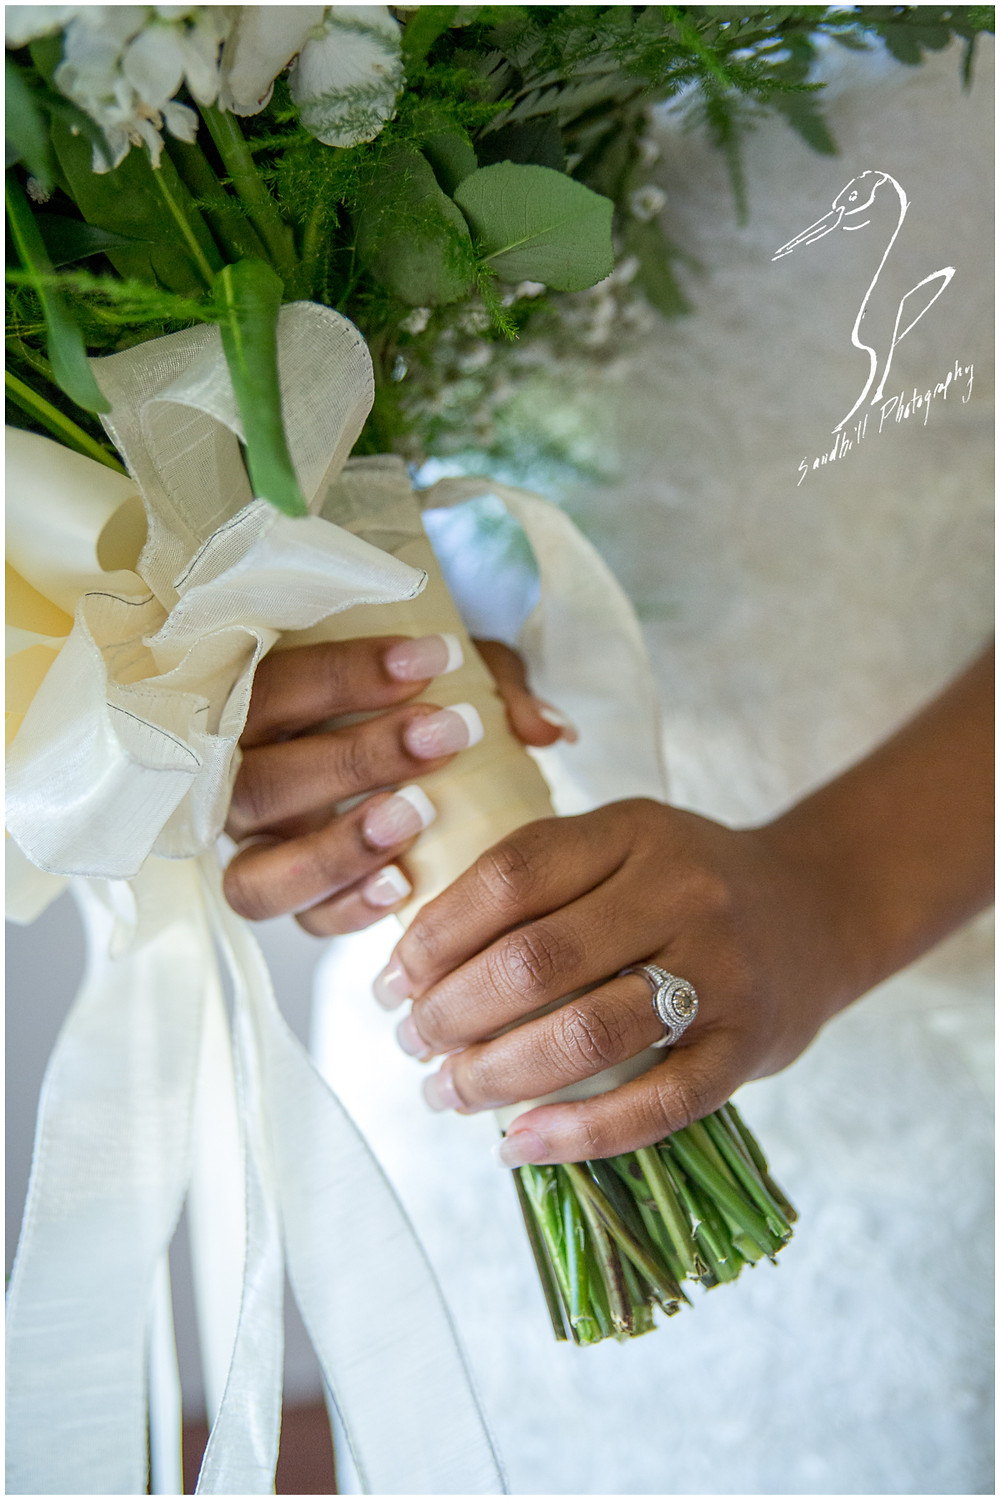 Bradenton Wedding Photographer, detail picture of the bride's hands holding her bouquet, focused on her engagement ring, at United First Methodist Church of Seffner